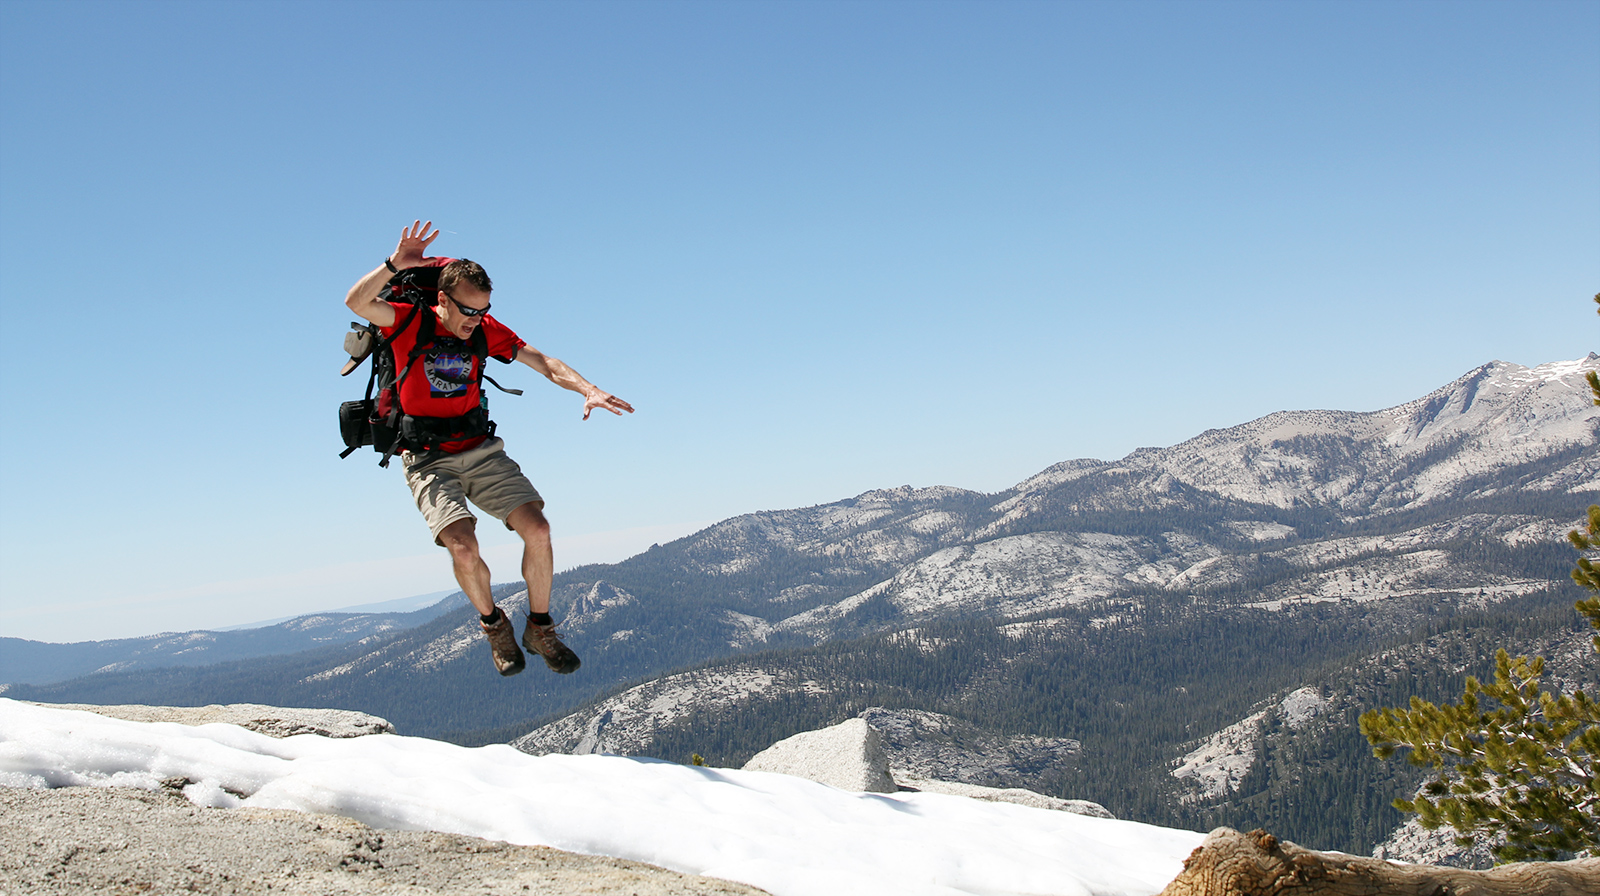 """Trying to get a cool """"hiker in mountain"""" pose. I did NOT land the jump (jumping with backpack into snow is not advised)."""